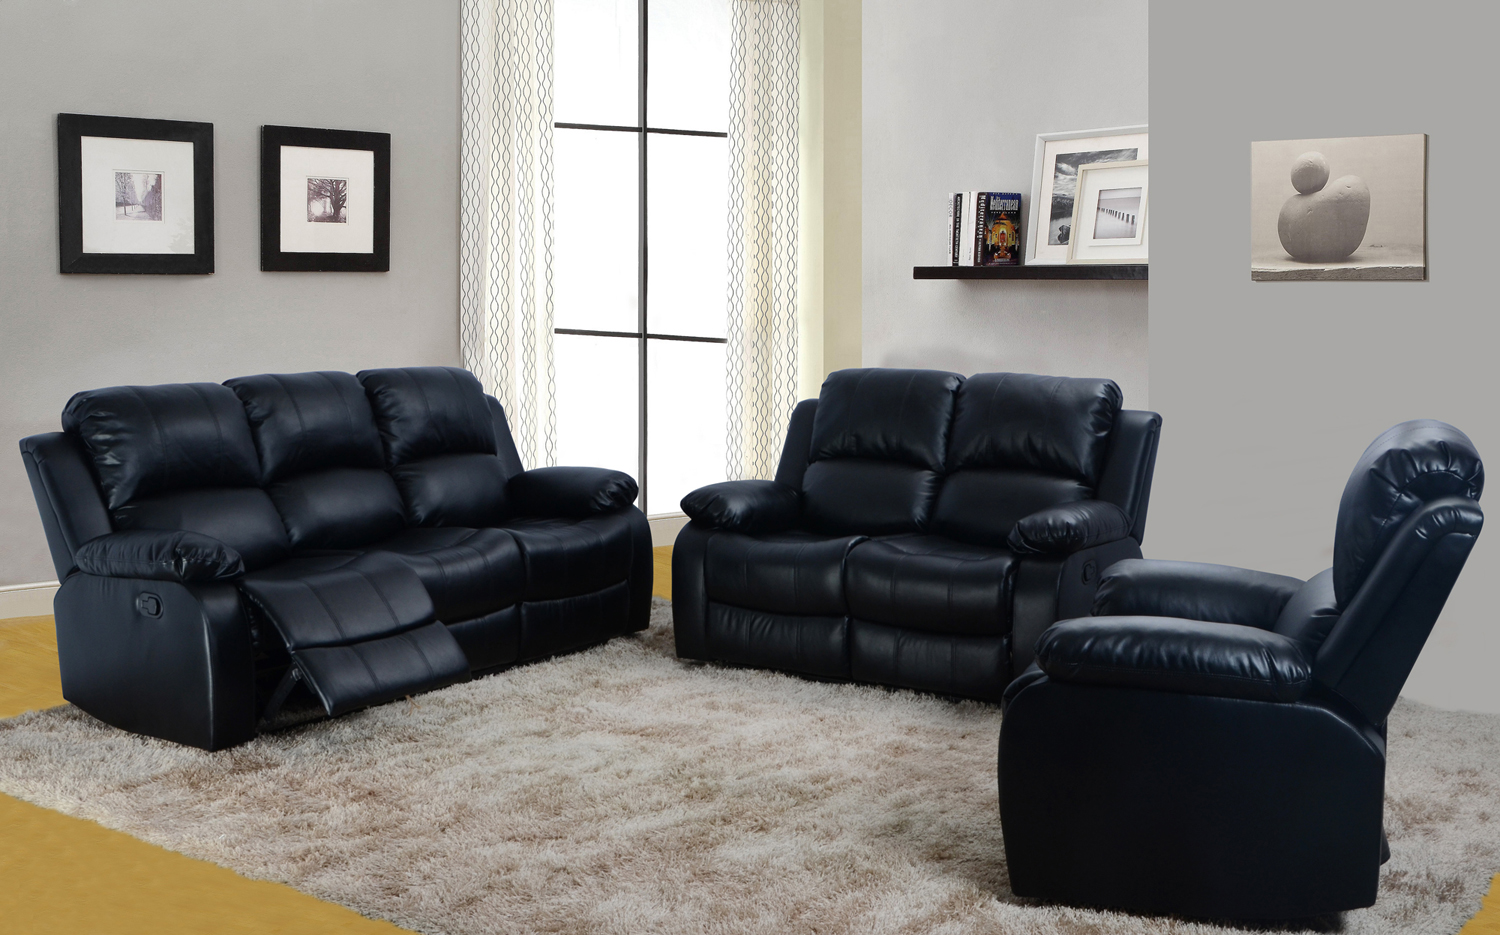 Delicieux 3 Piece Bonded Faux Leather Motion Recliner Sofa, Loveseat, Chair Set    Black (